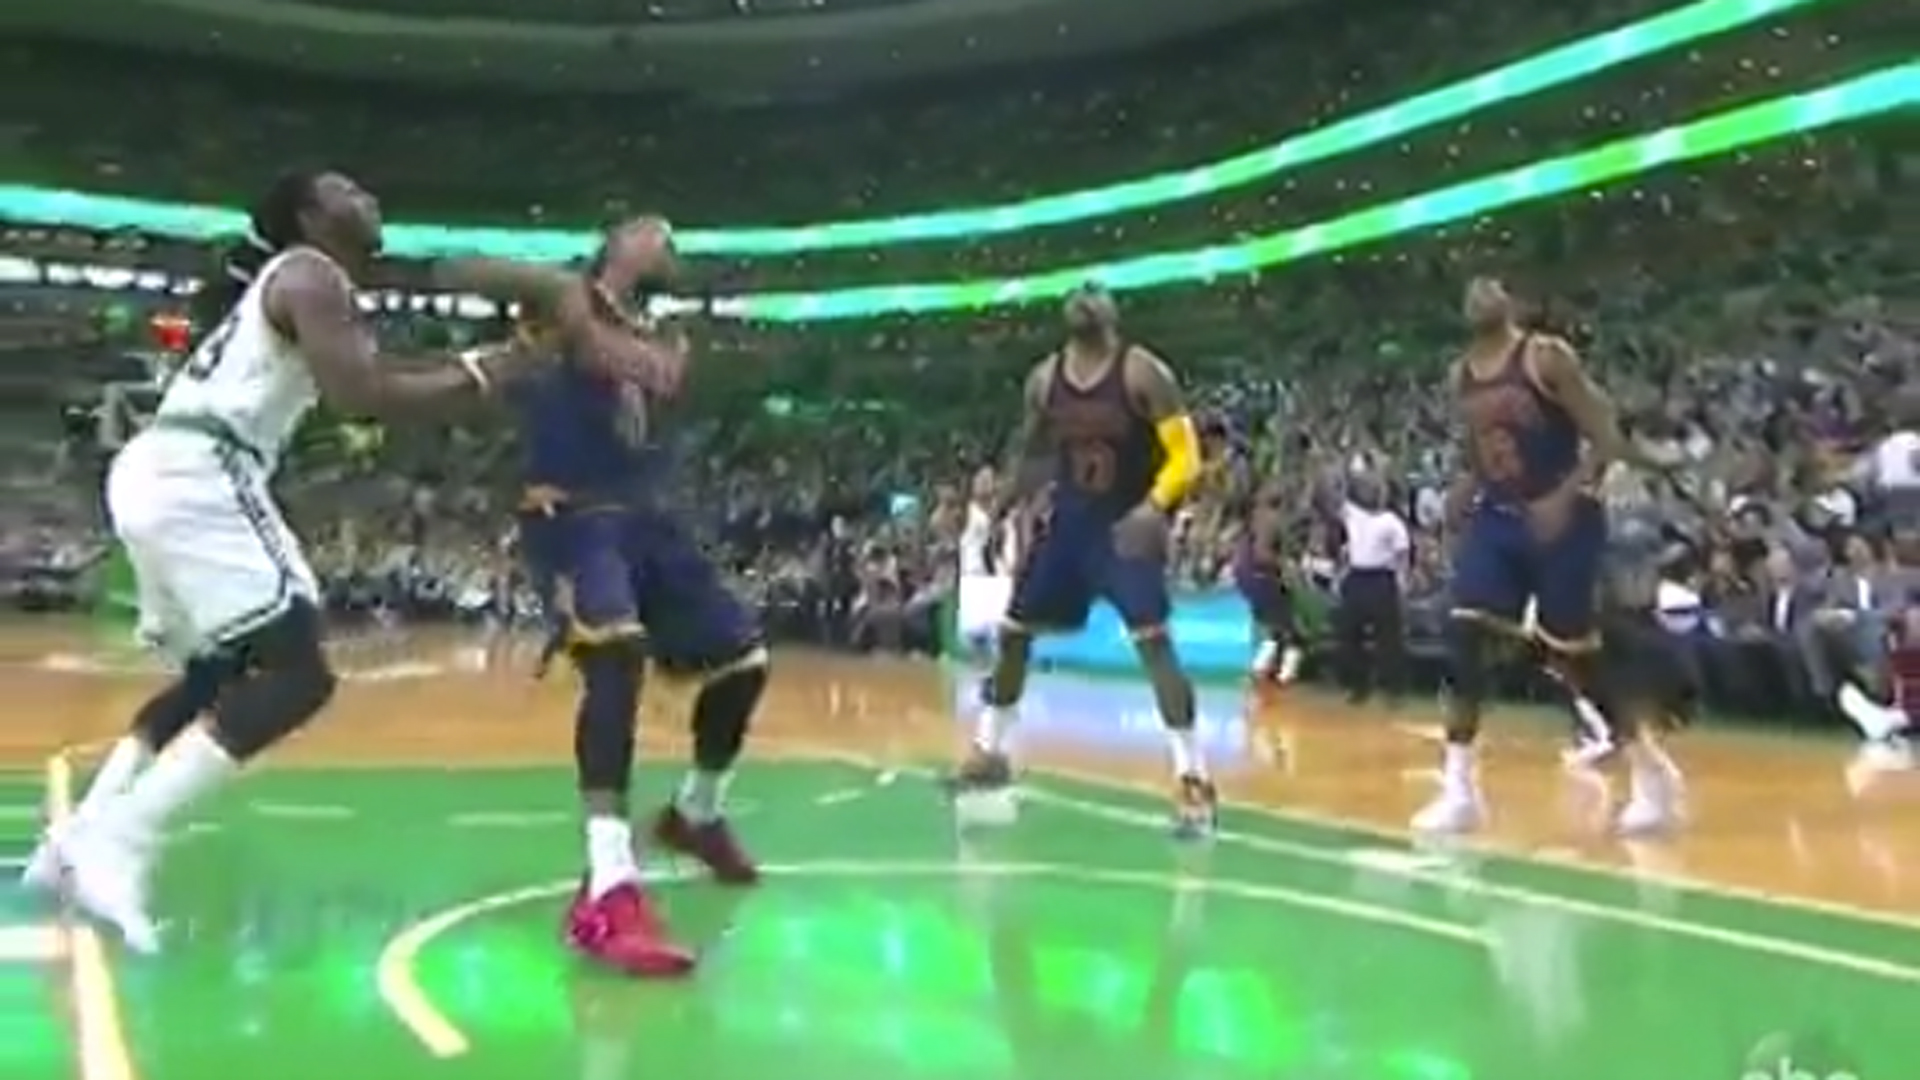 Celtics, Cavs continue to get chippy; J.R. Smith ejected following forearm to Jae Crowder